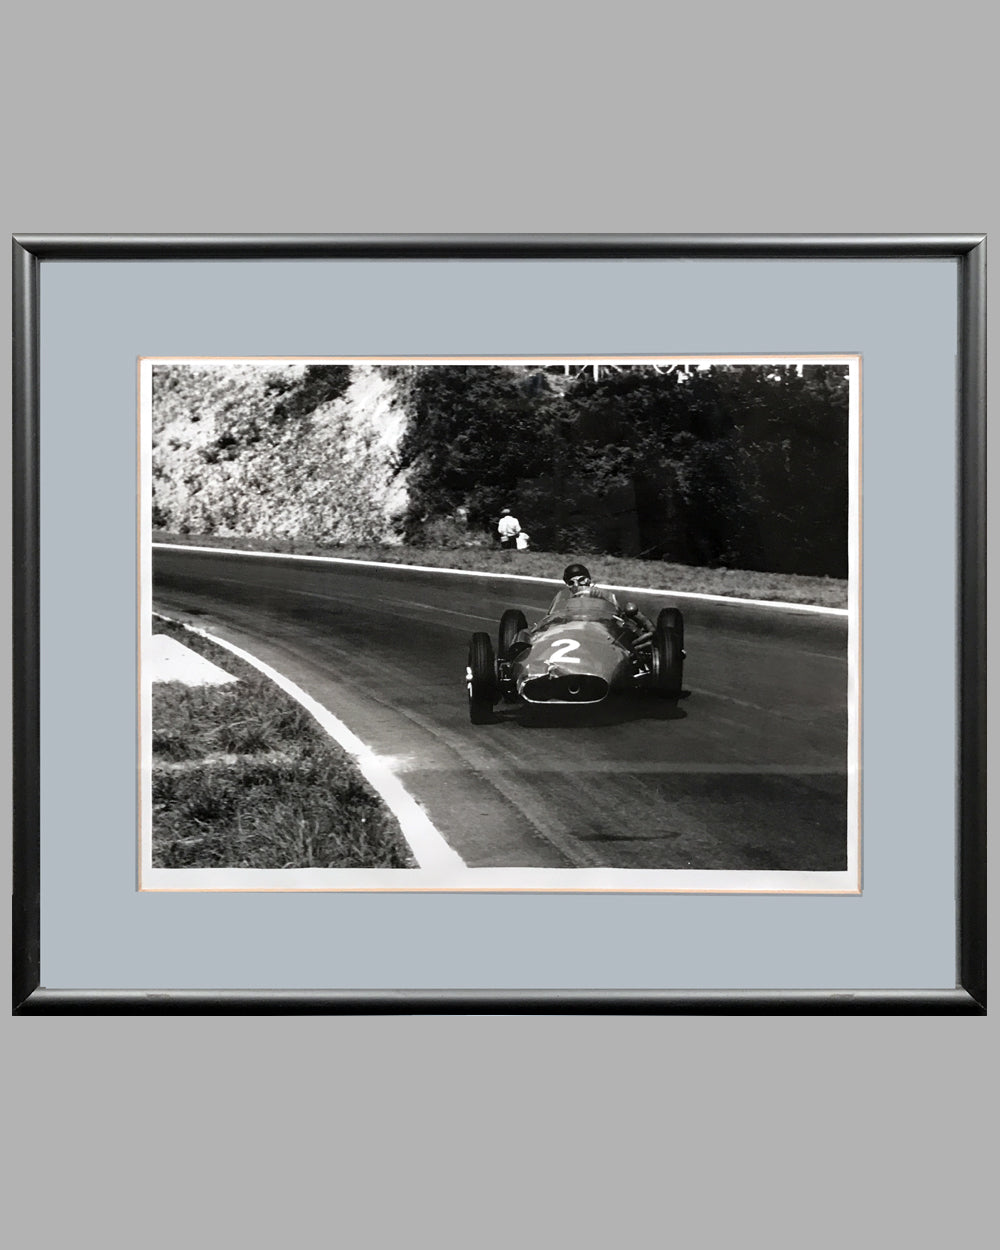 Juan Manuel Fangio in his Maserati 250F b&w photograph by Fernando Gomez